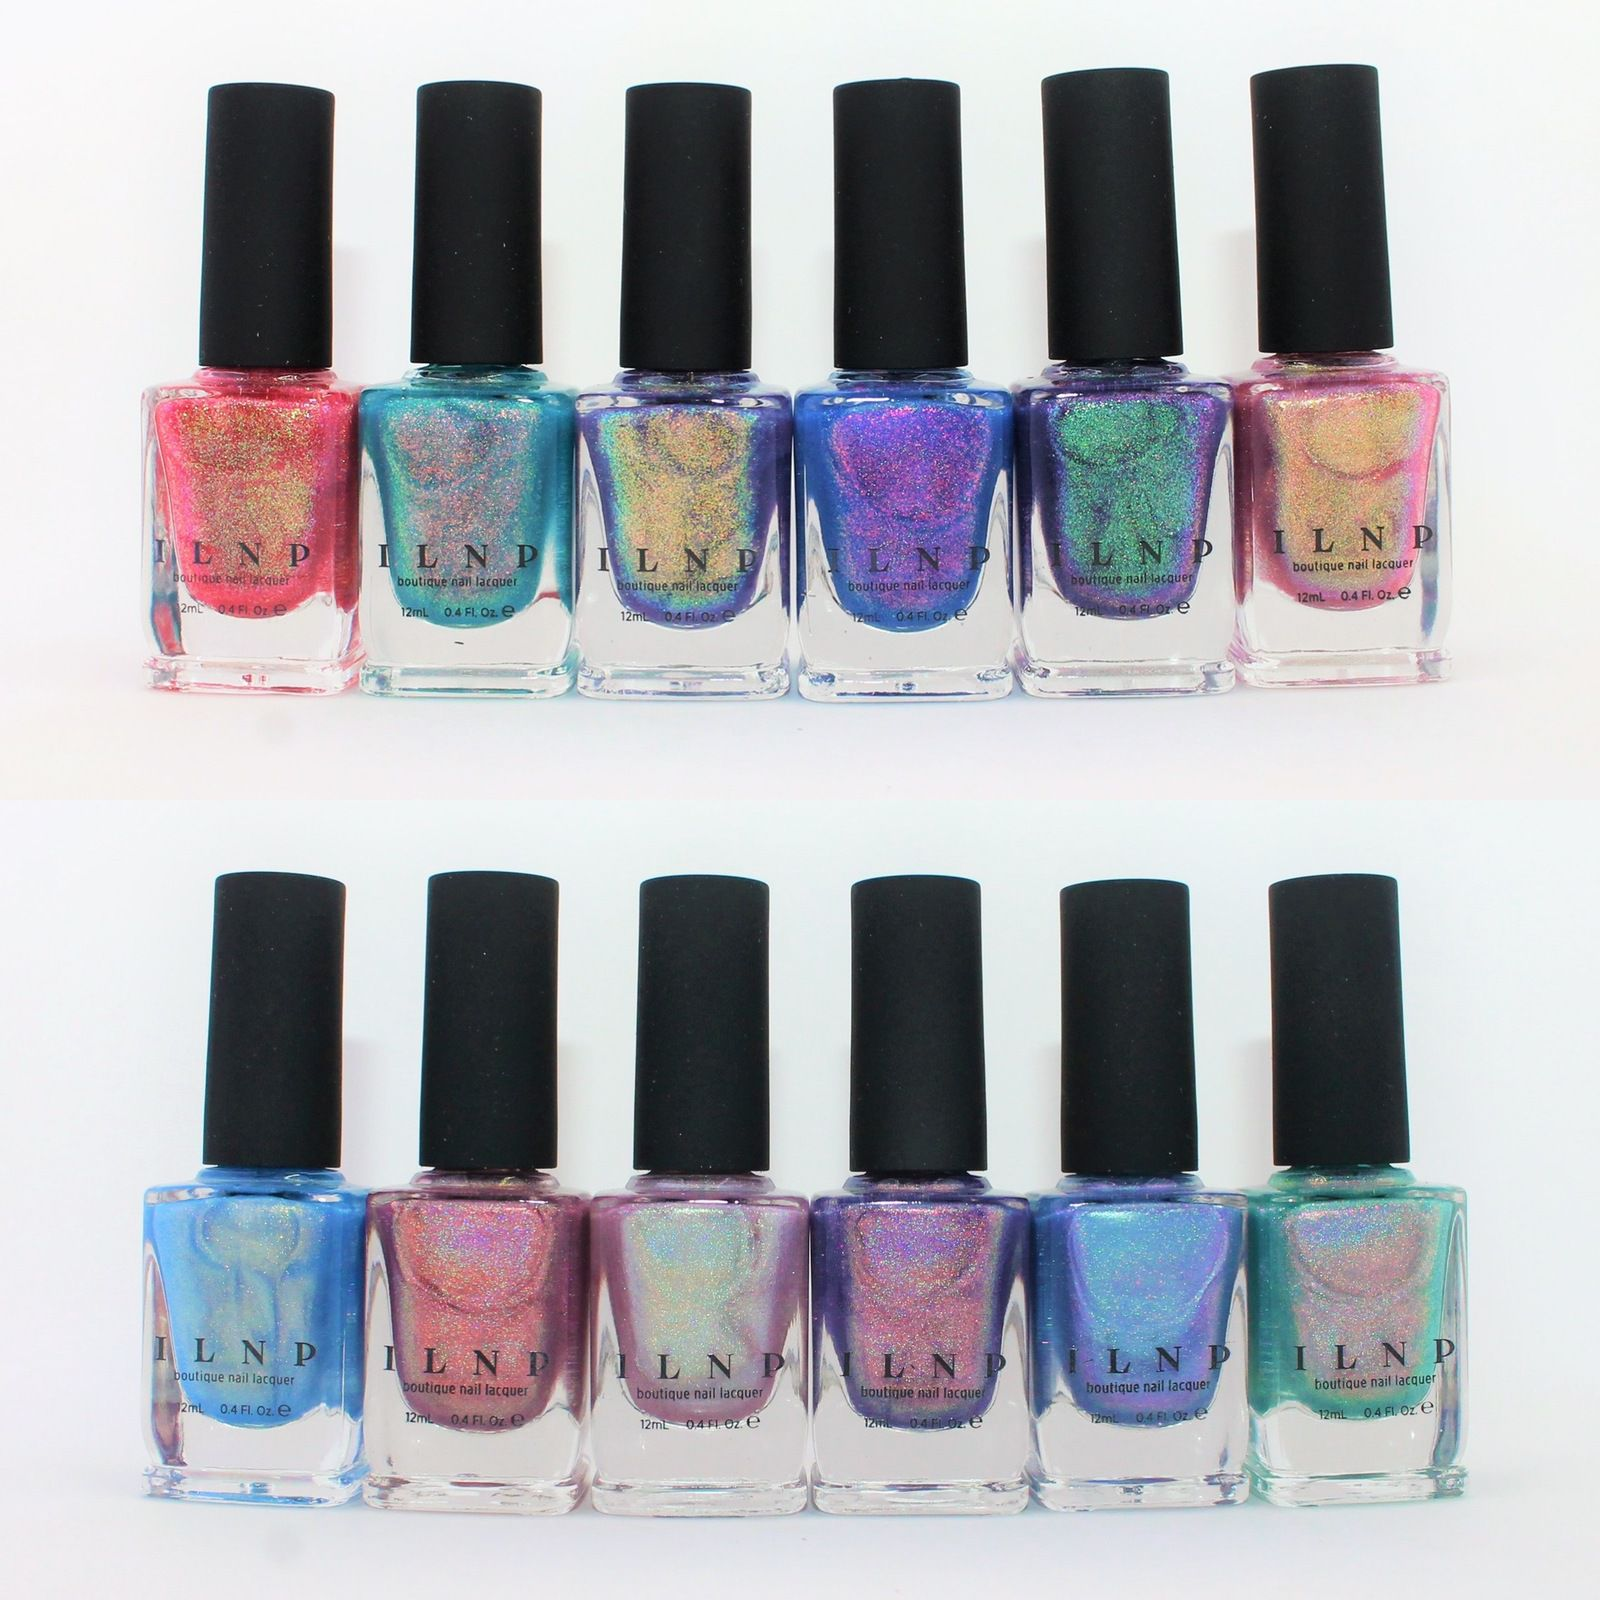 ILNP Summer Nights collection (2020) and Summer Feels collection (2019)